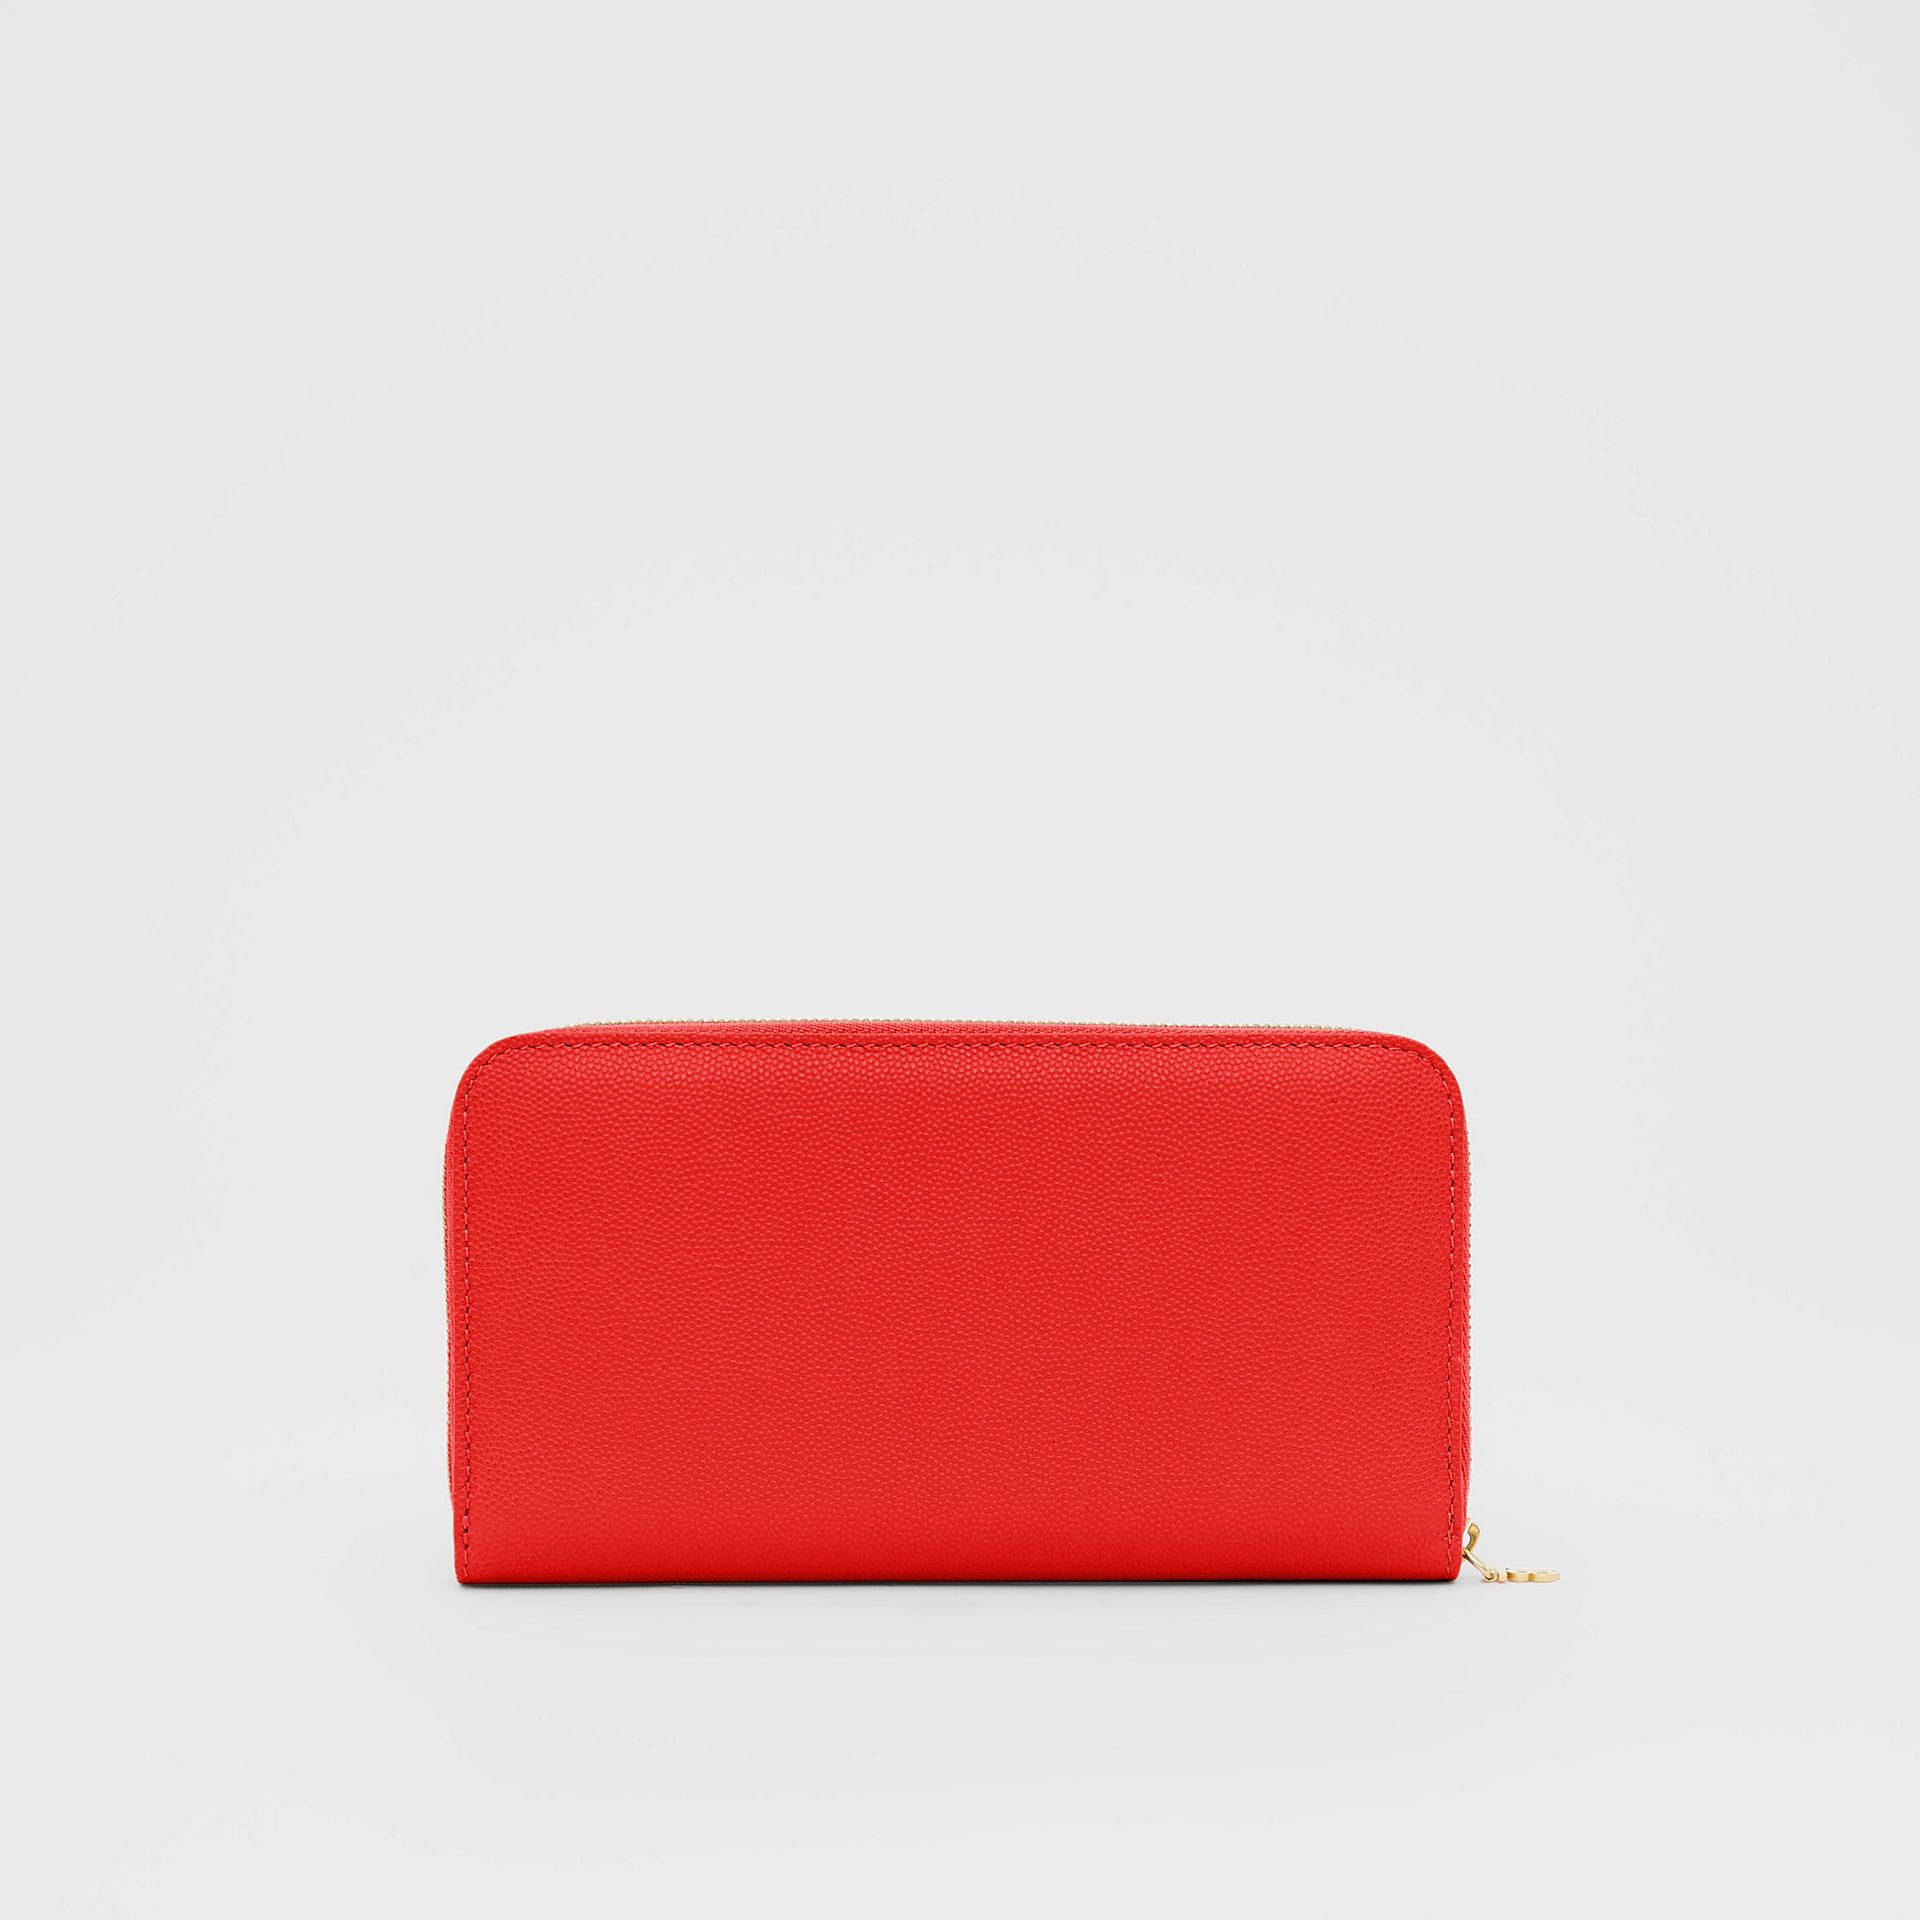 Monogram Motif Grainy Leather Ziparound Wallet in Bright Red - Women | Burberry - gallery image 5